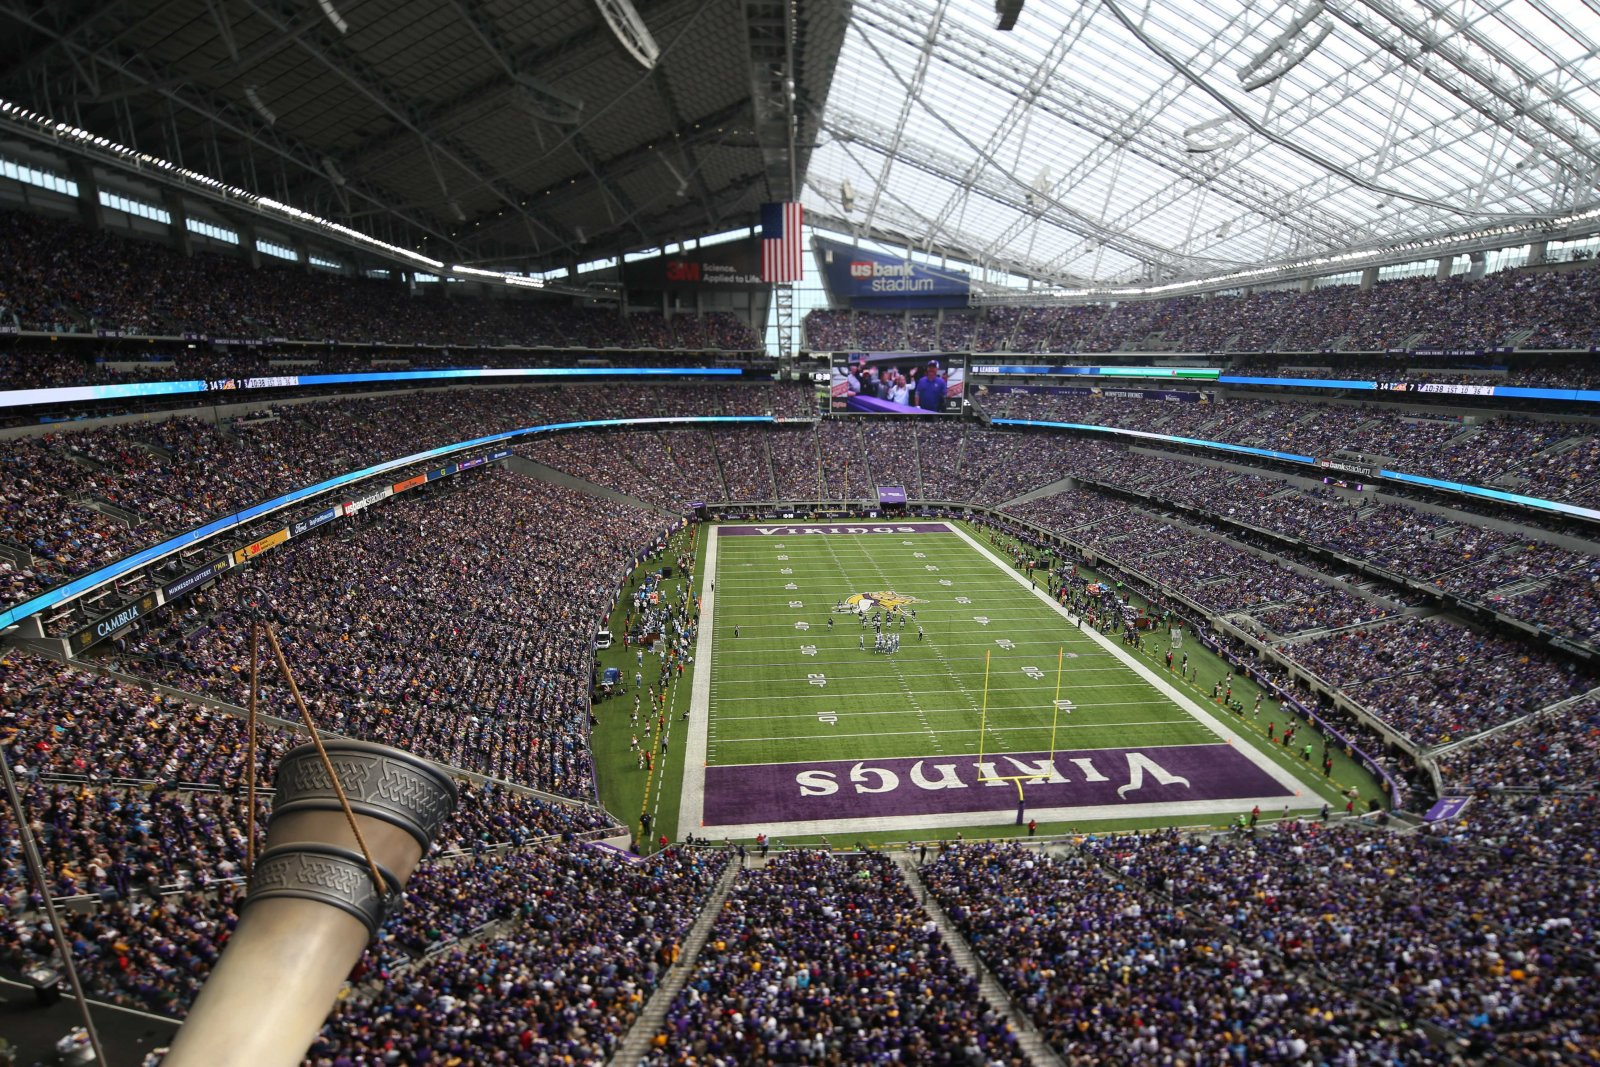 US Bank Stadium: Minnesota Vikings v Detroit Lions, NFL